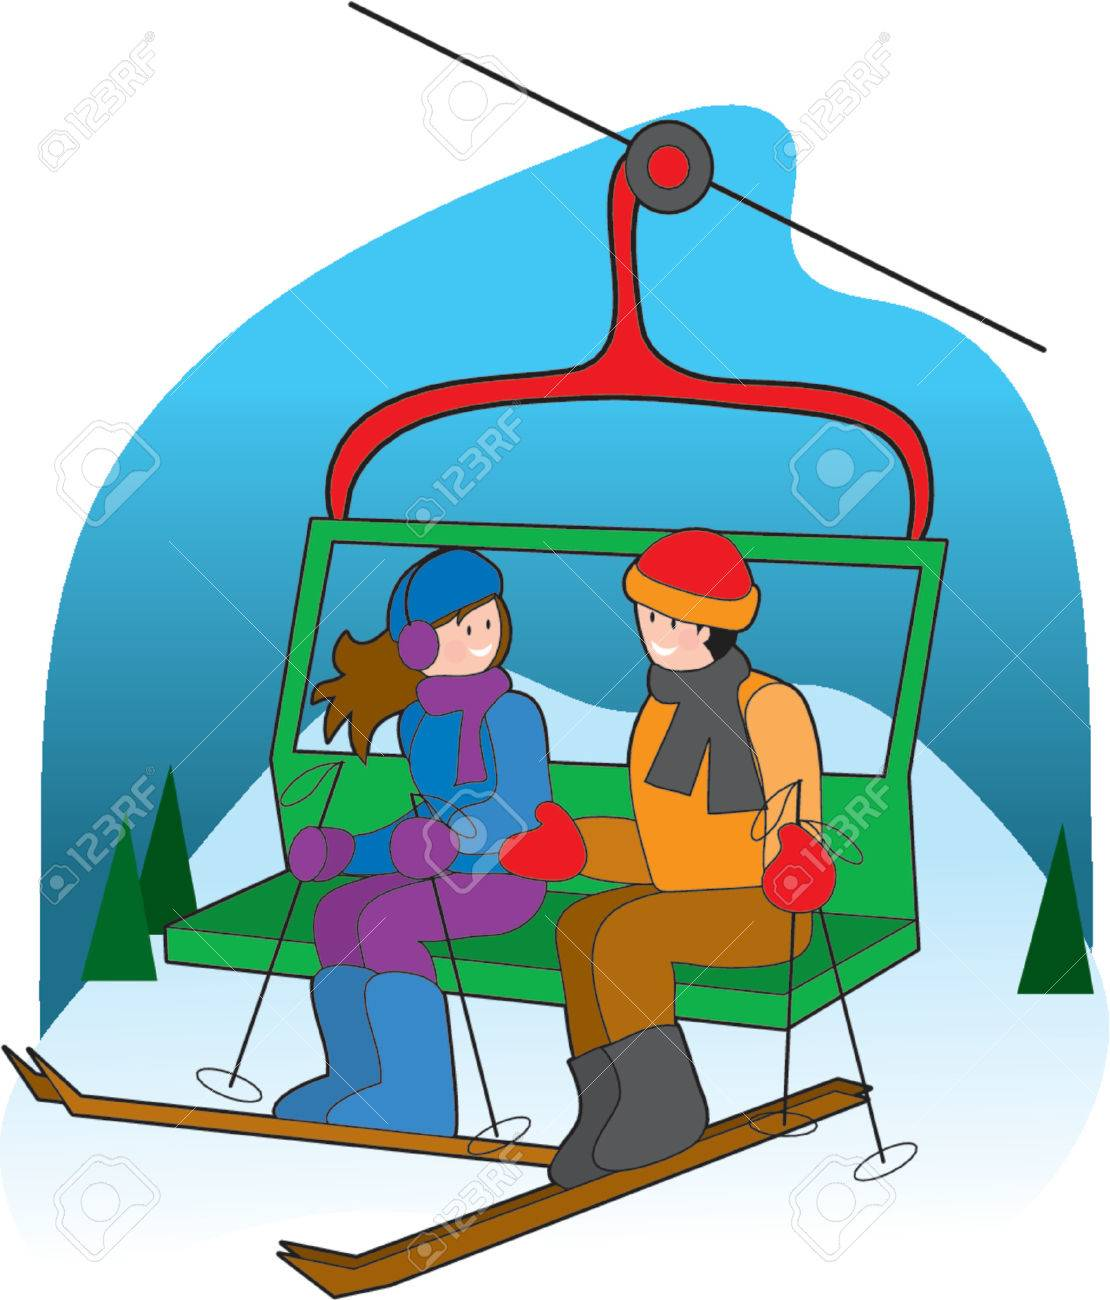 Couple Chatting On A Ski Lift Royalty Free Cliparts Vectors And Stock Illustration Image 825967